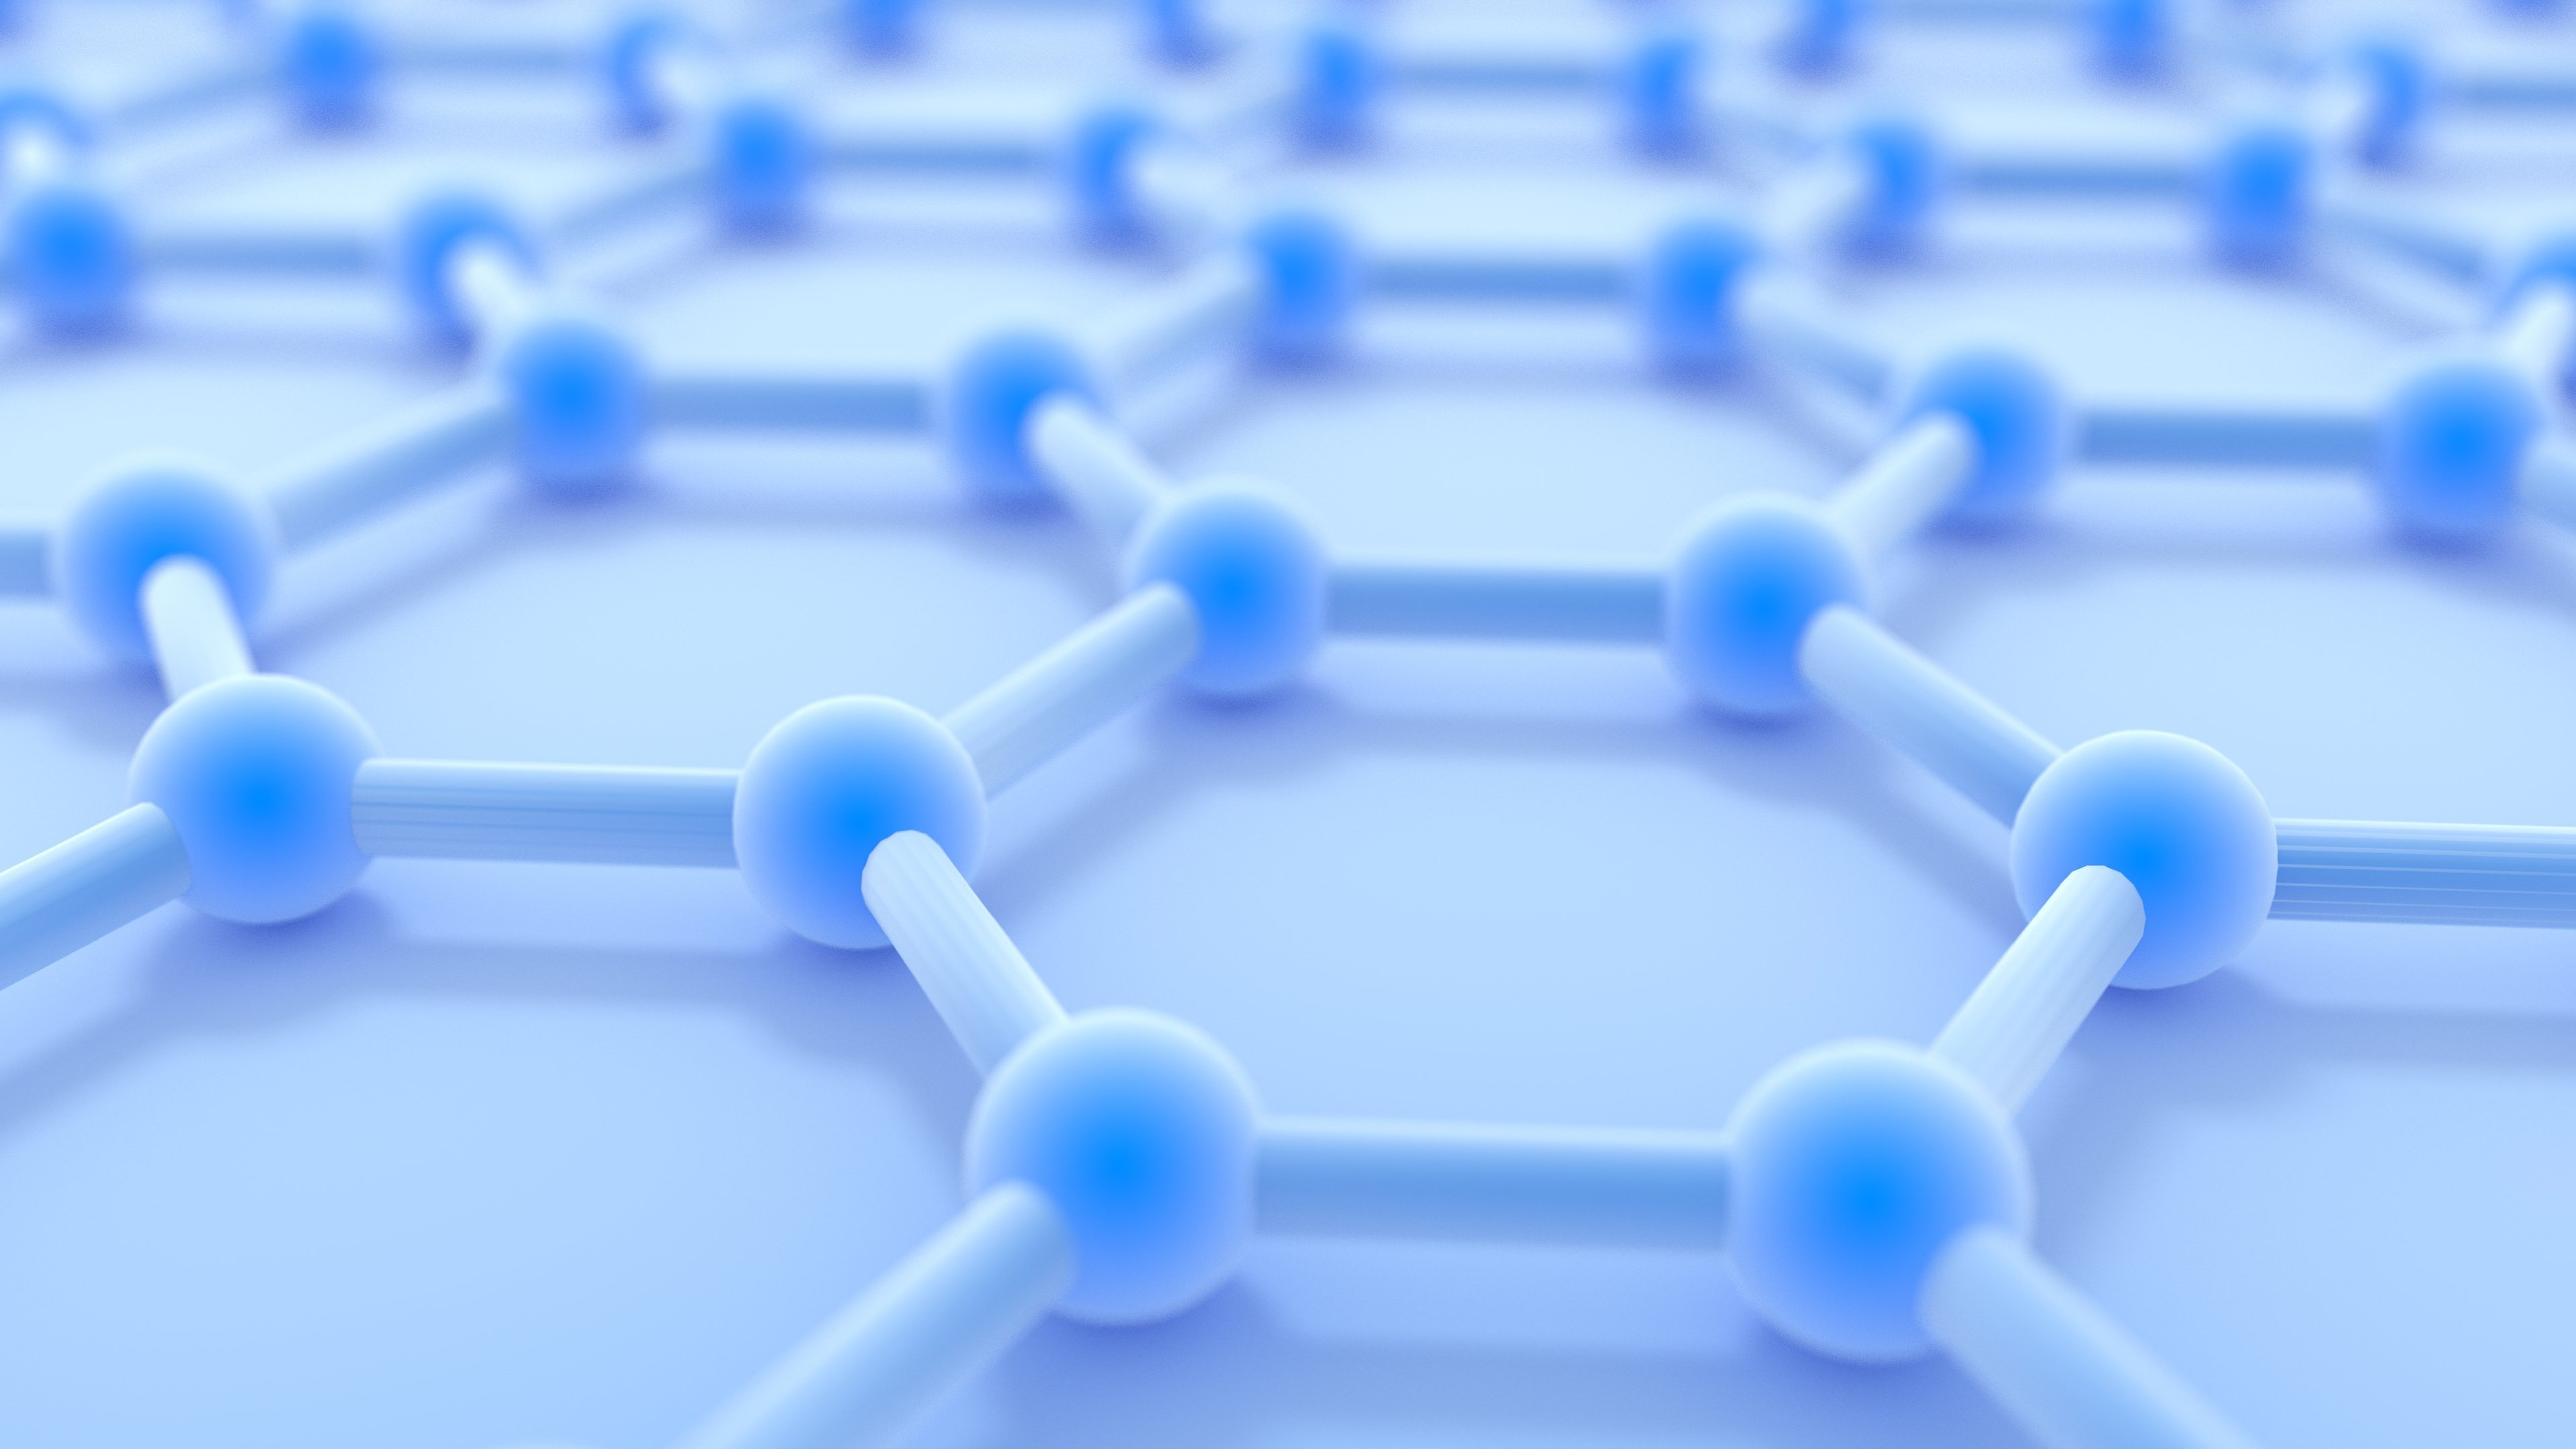 Graphene is made up of an atom-thick sheet of carbon atoms that form a repeating pattern of hexagons.